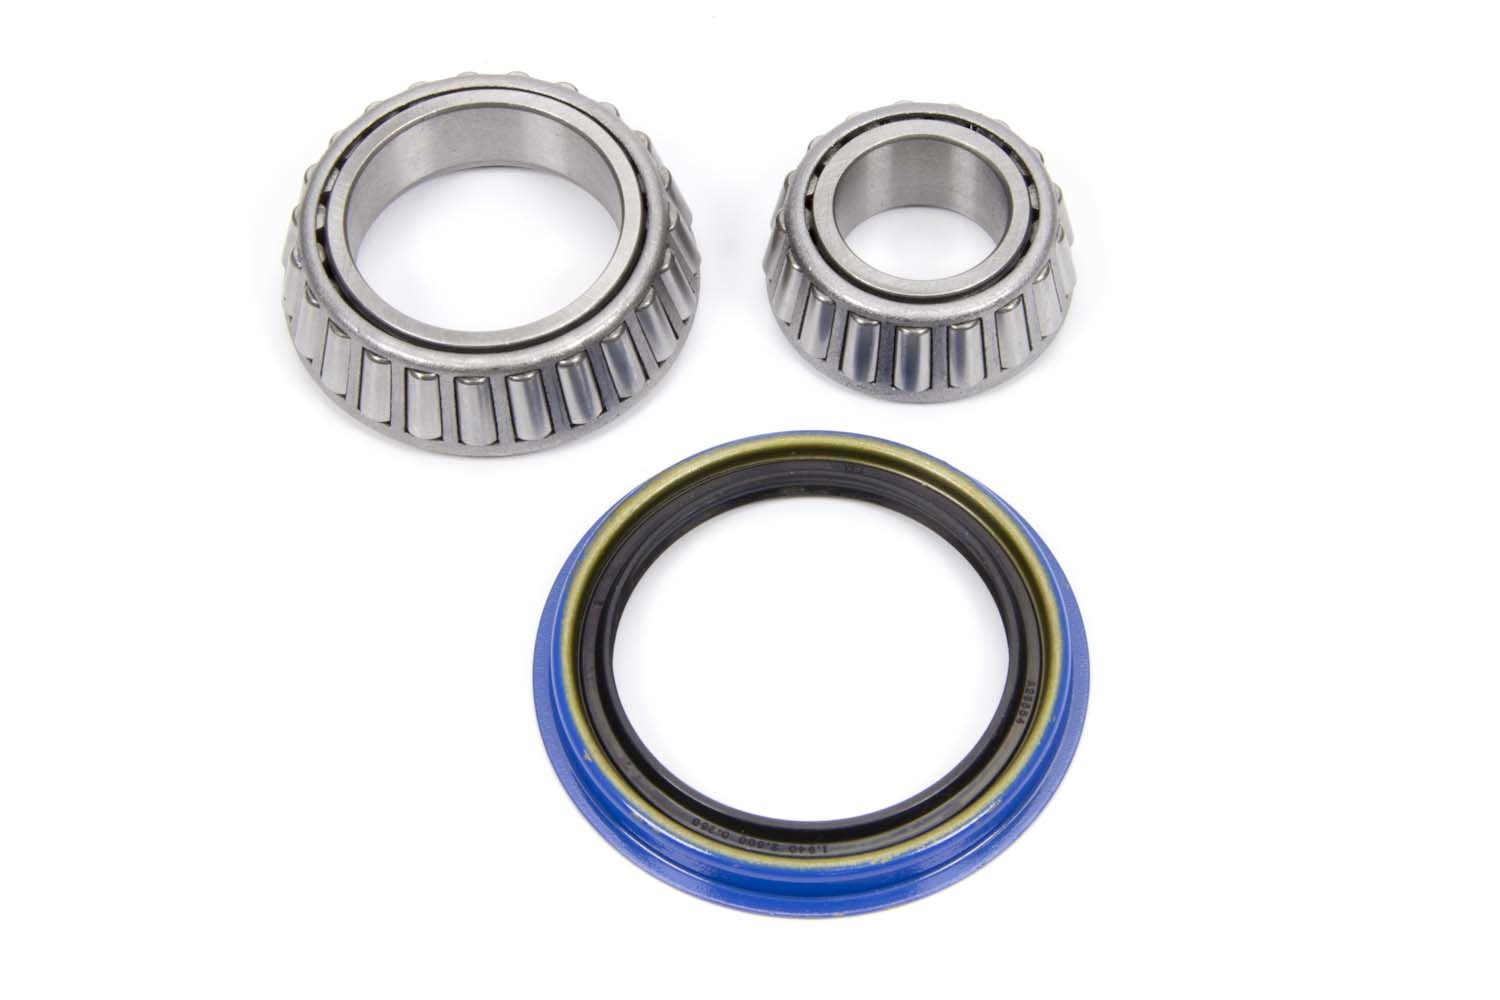 Howe 20567 Wheel Bearing Kit, Howe Hub on Mustang II / Pinto, Kit